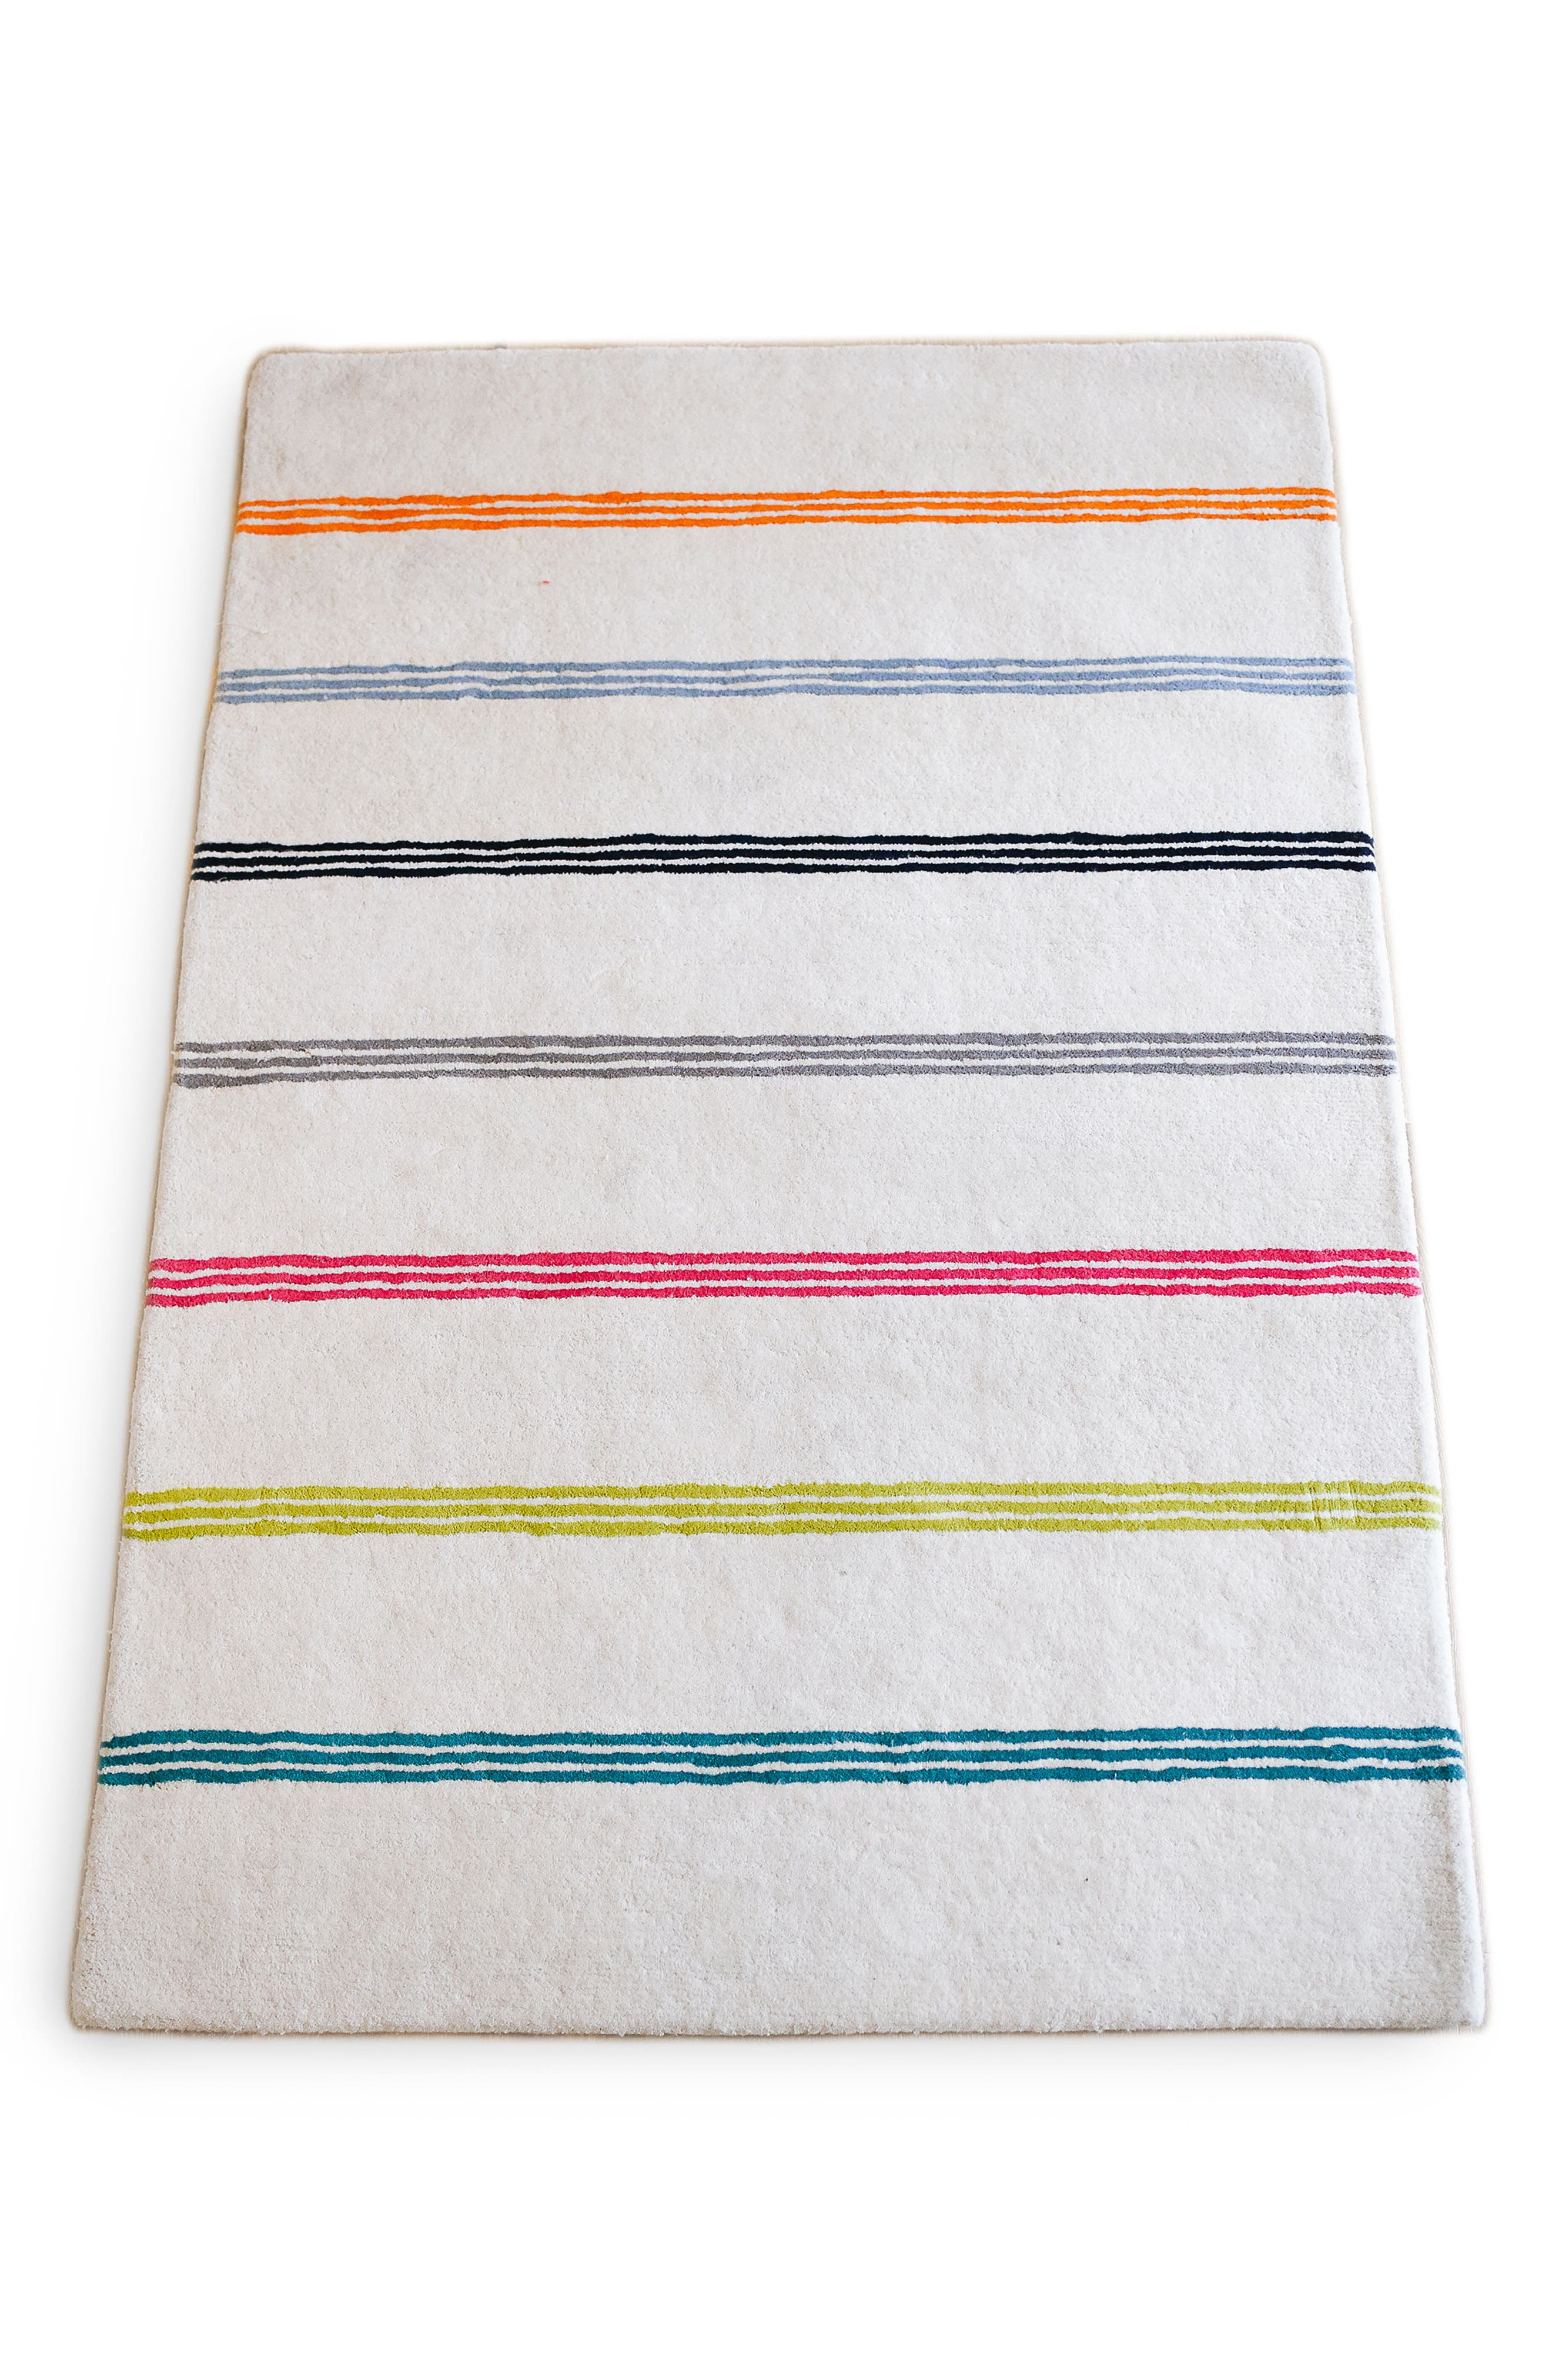 Rainbow Stripe Wool Rug,                         Main,                         color, Multi